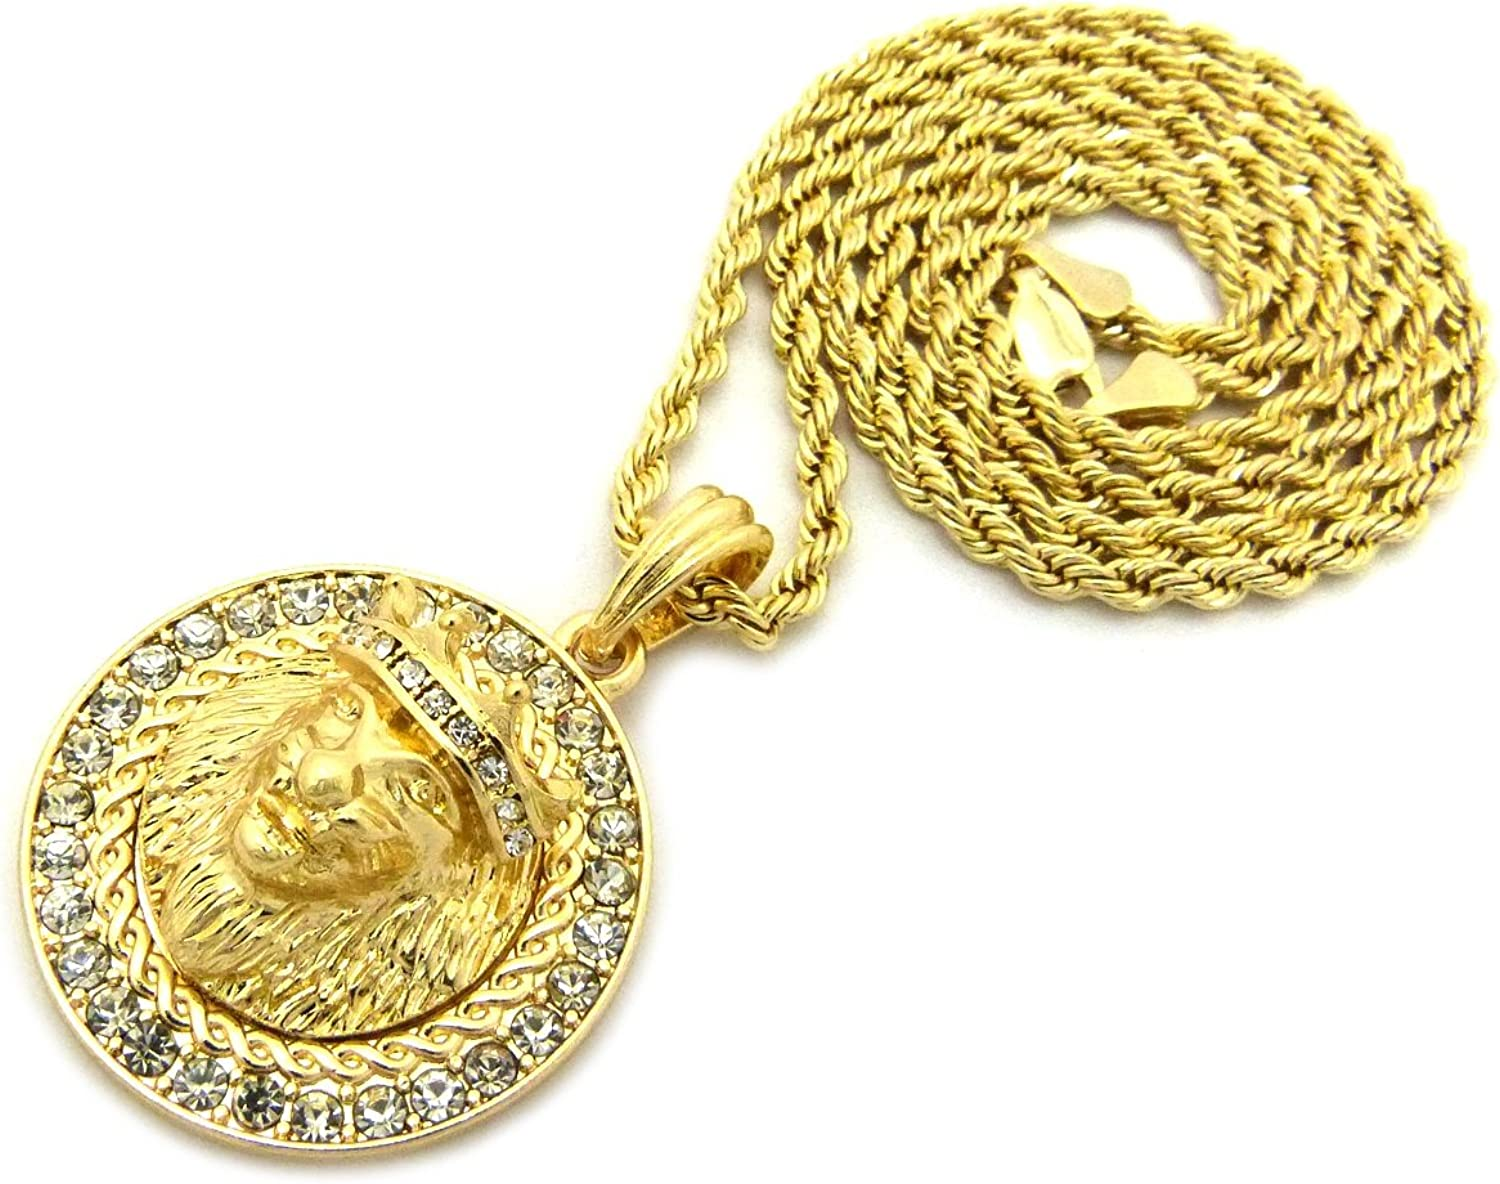 XQP15RCG NEW ICED OUT LION HEAD ROUND PENDANT /&3mm//24 ROPE CHAIN HIP HOP NECKLACE